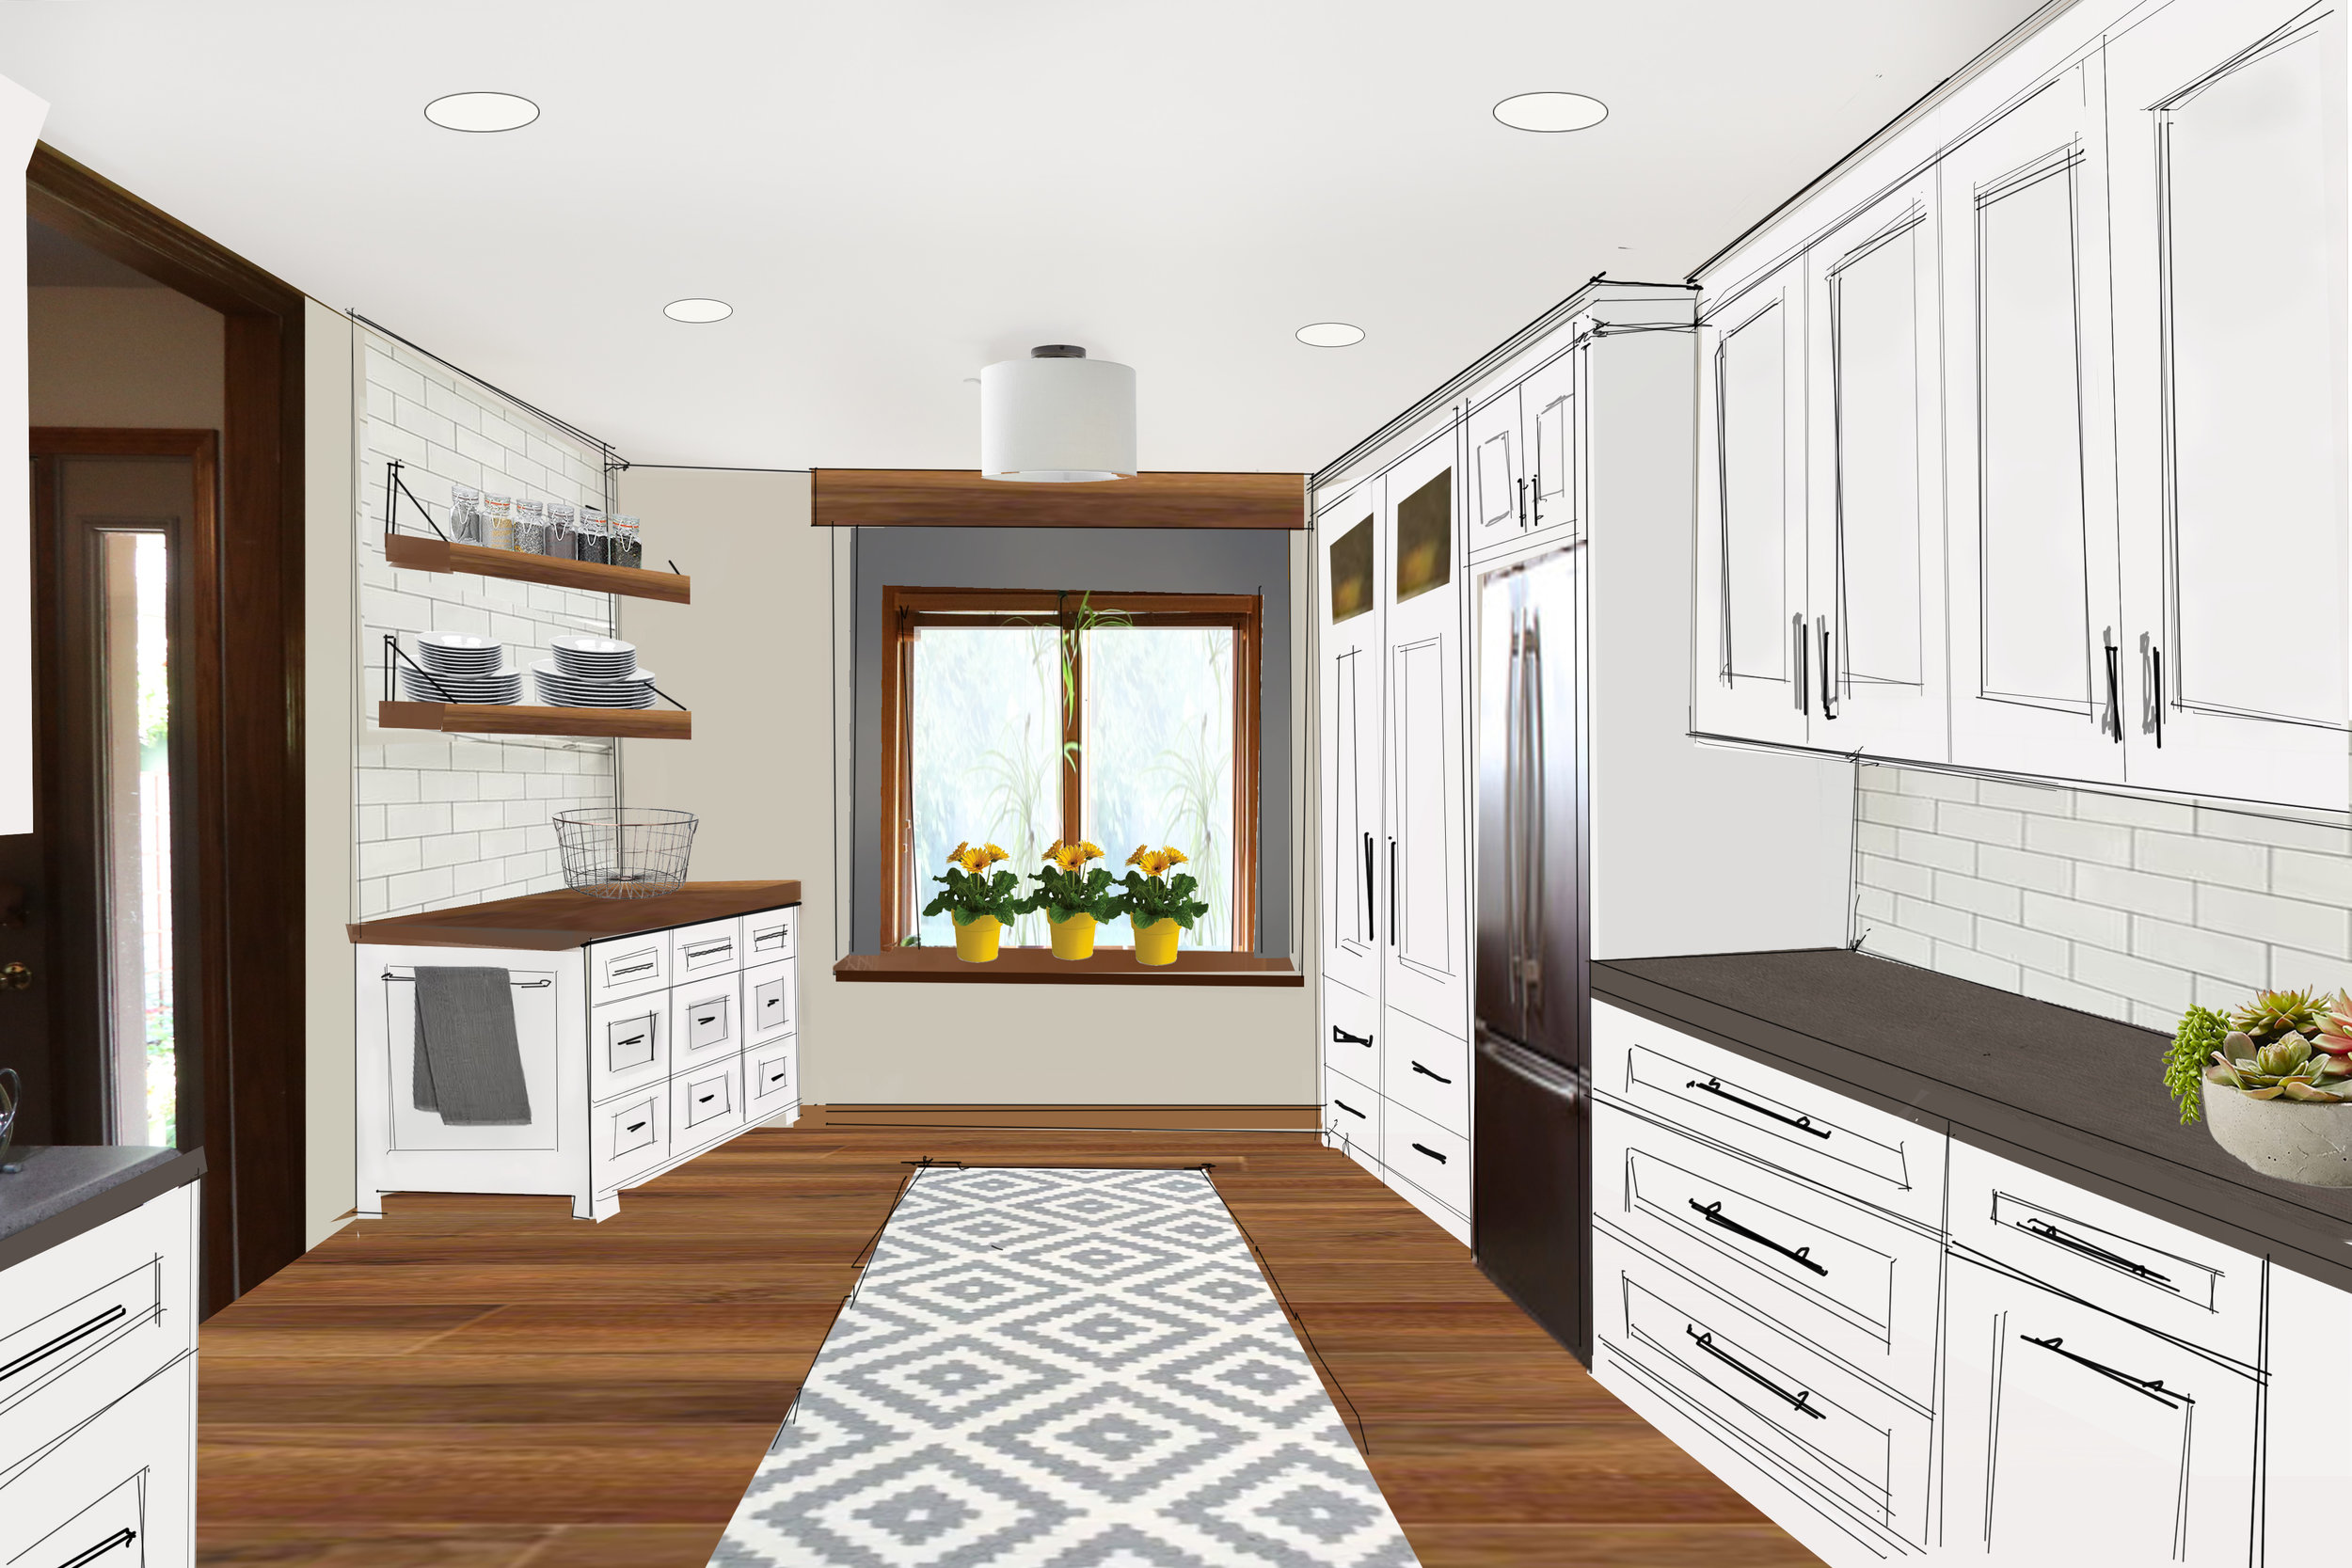 RENDERING OF ROOM